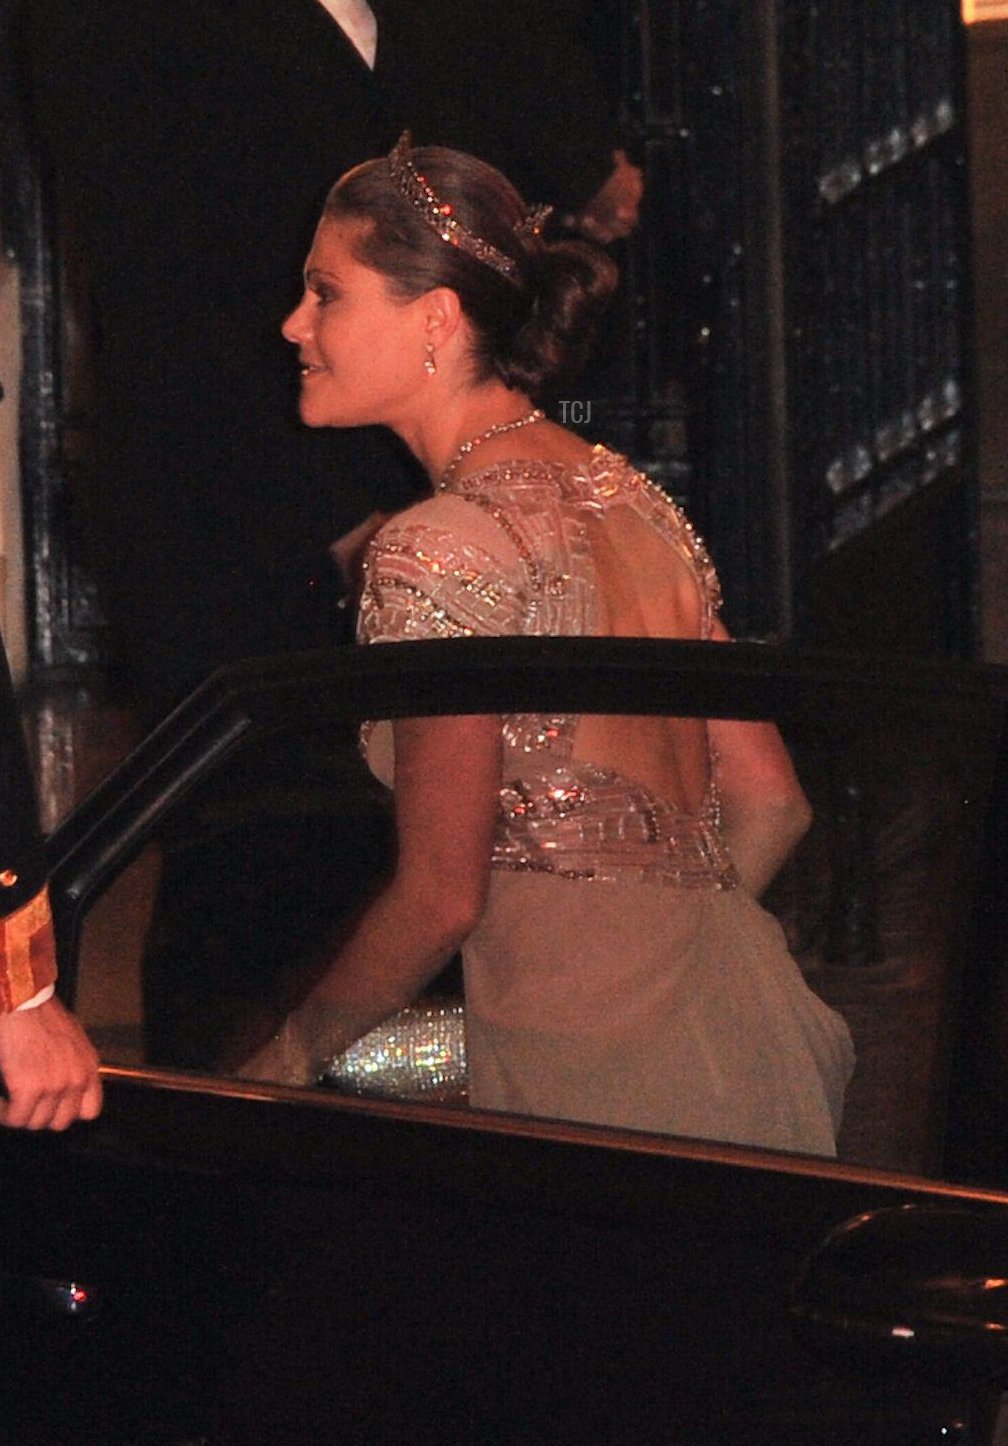 Crown Princess Victoria of Sweden and Prince Daniel attending the Gala dinner for the wedding of Prince Guillaume Of Luxembourg and Stephanie de Lannoy at the Grand-ducal Palace in Luxembourg on October 19, 2012